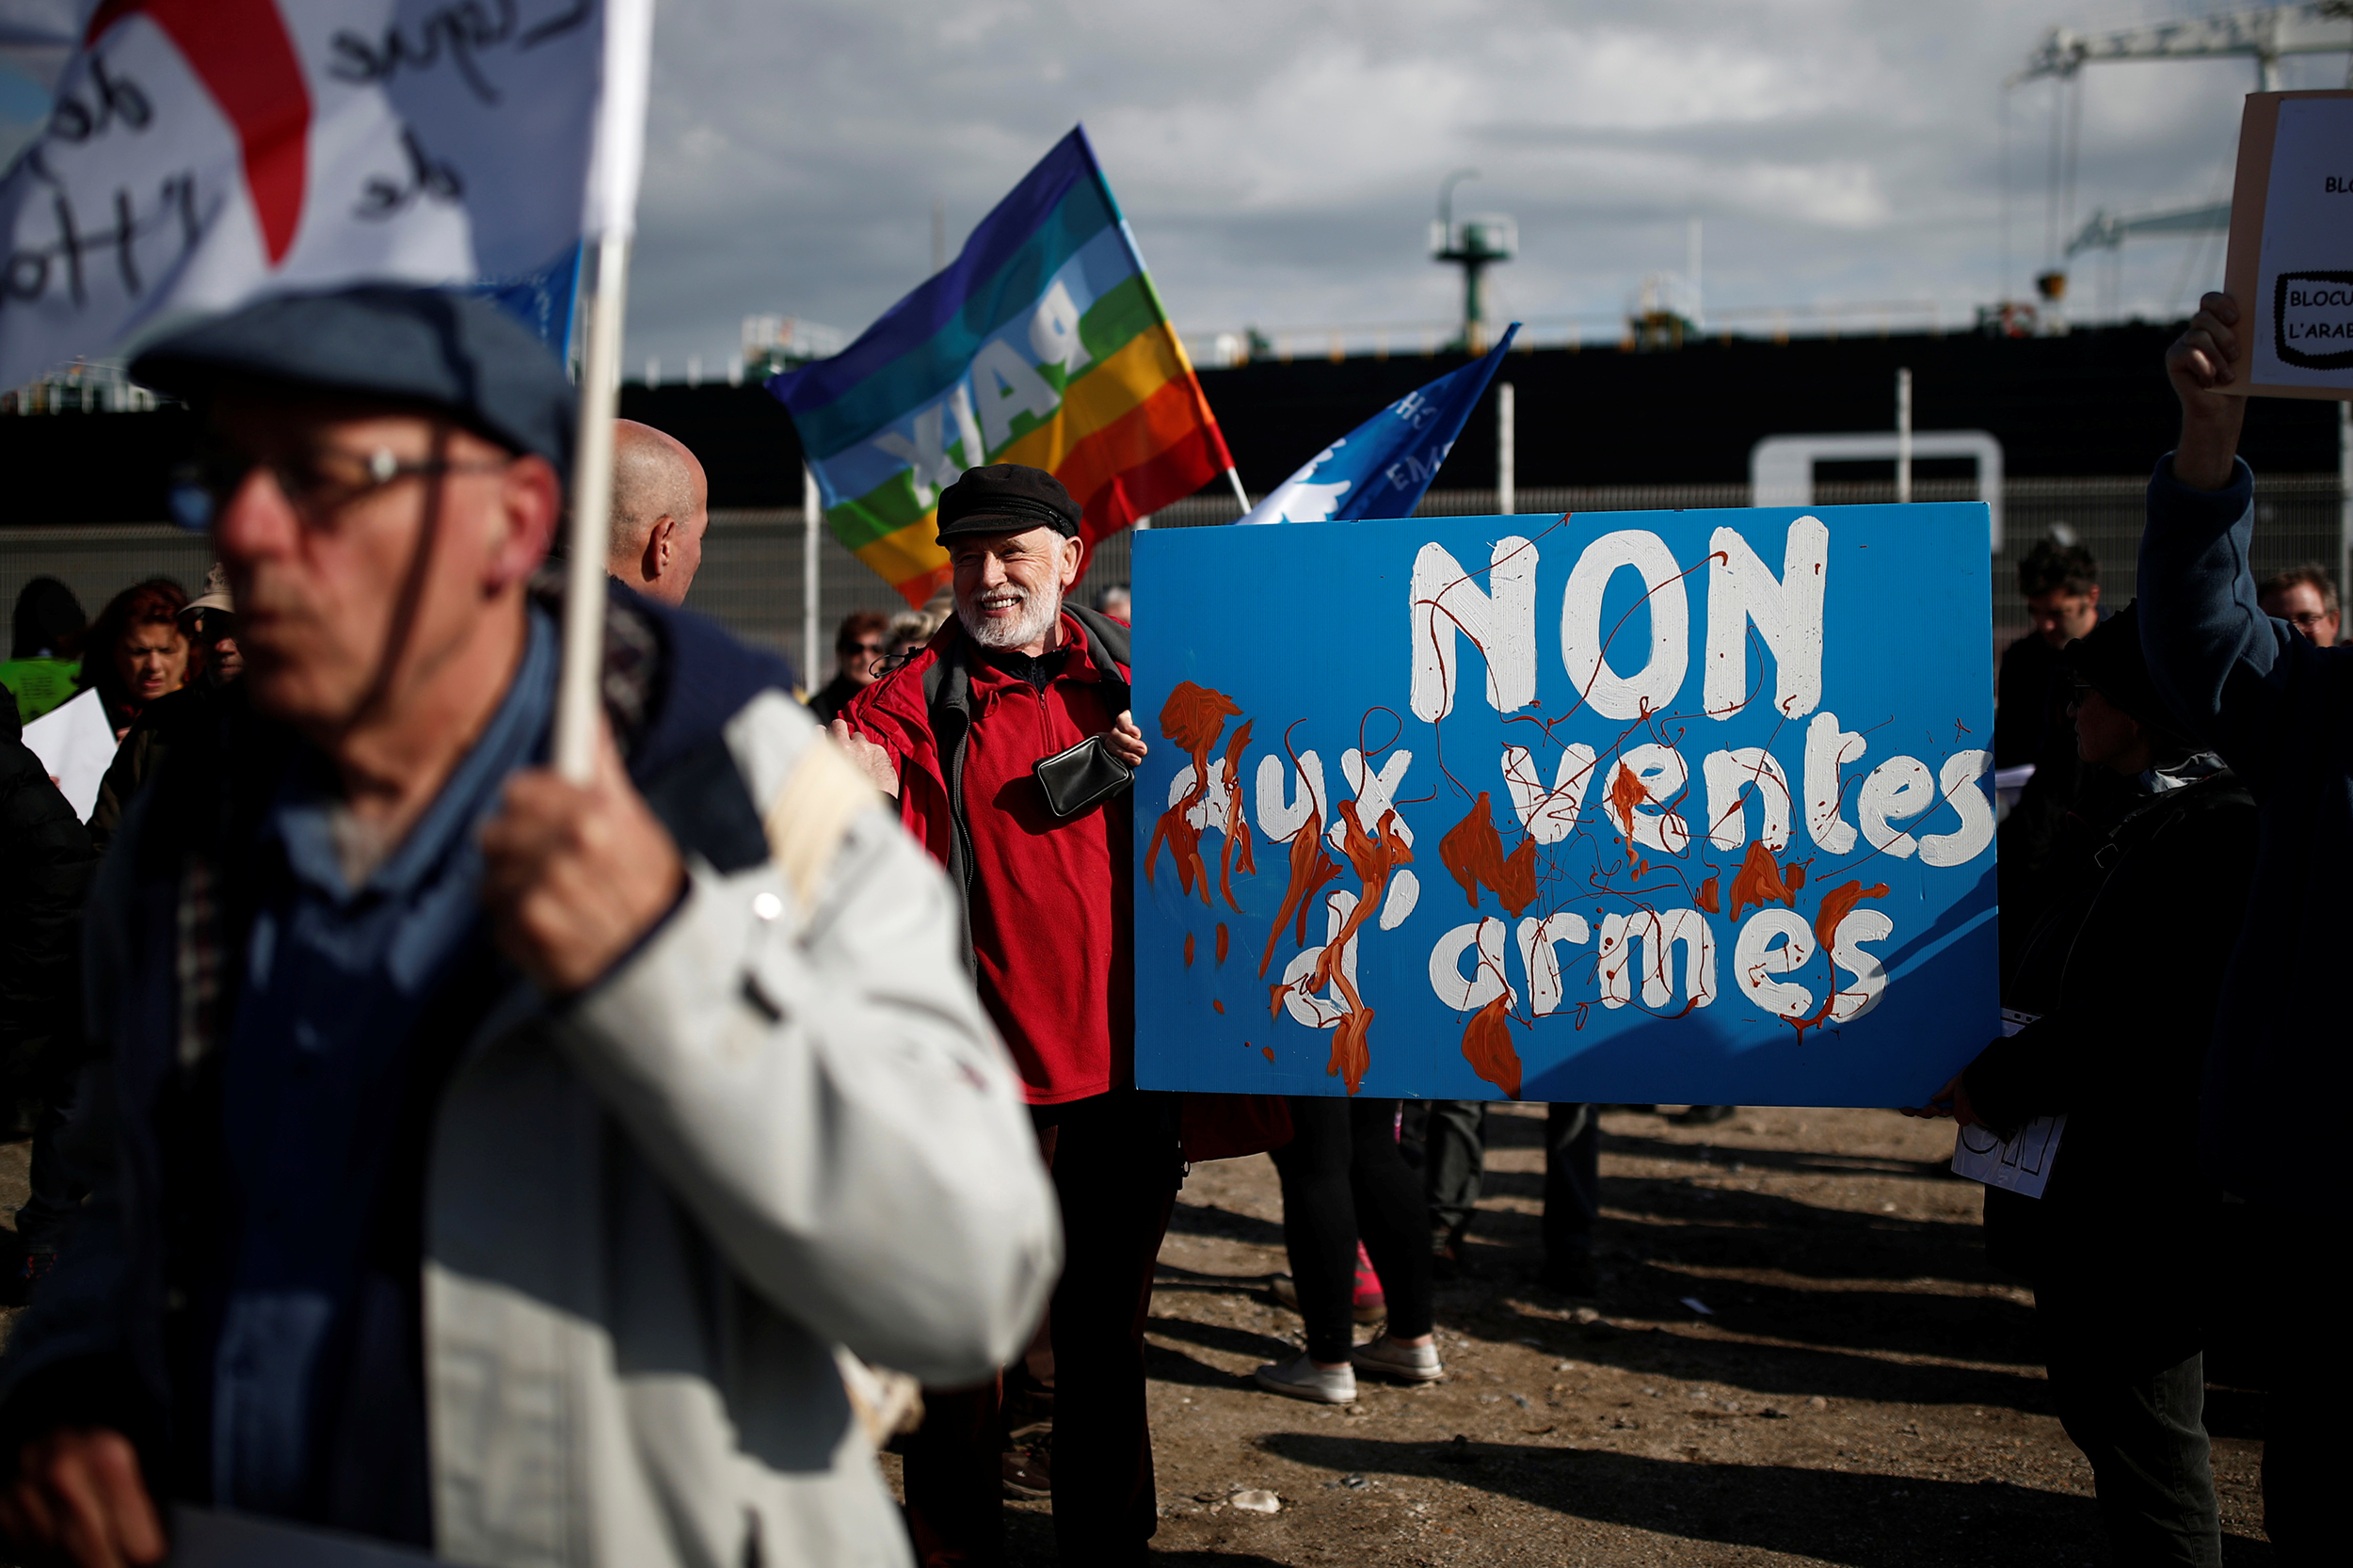 """People attend a demonstration to protest against the loading of weapons aboard the Bahri-Yanbu, a cargo ship operating for Saudi Arabia's defence and interior ministries, in Le Havre, France, May 9, 2019. The banner reads: """"No to arms sales""""."""